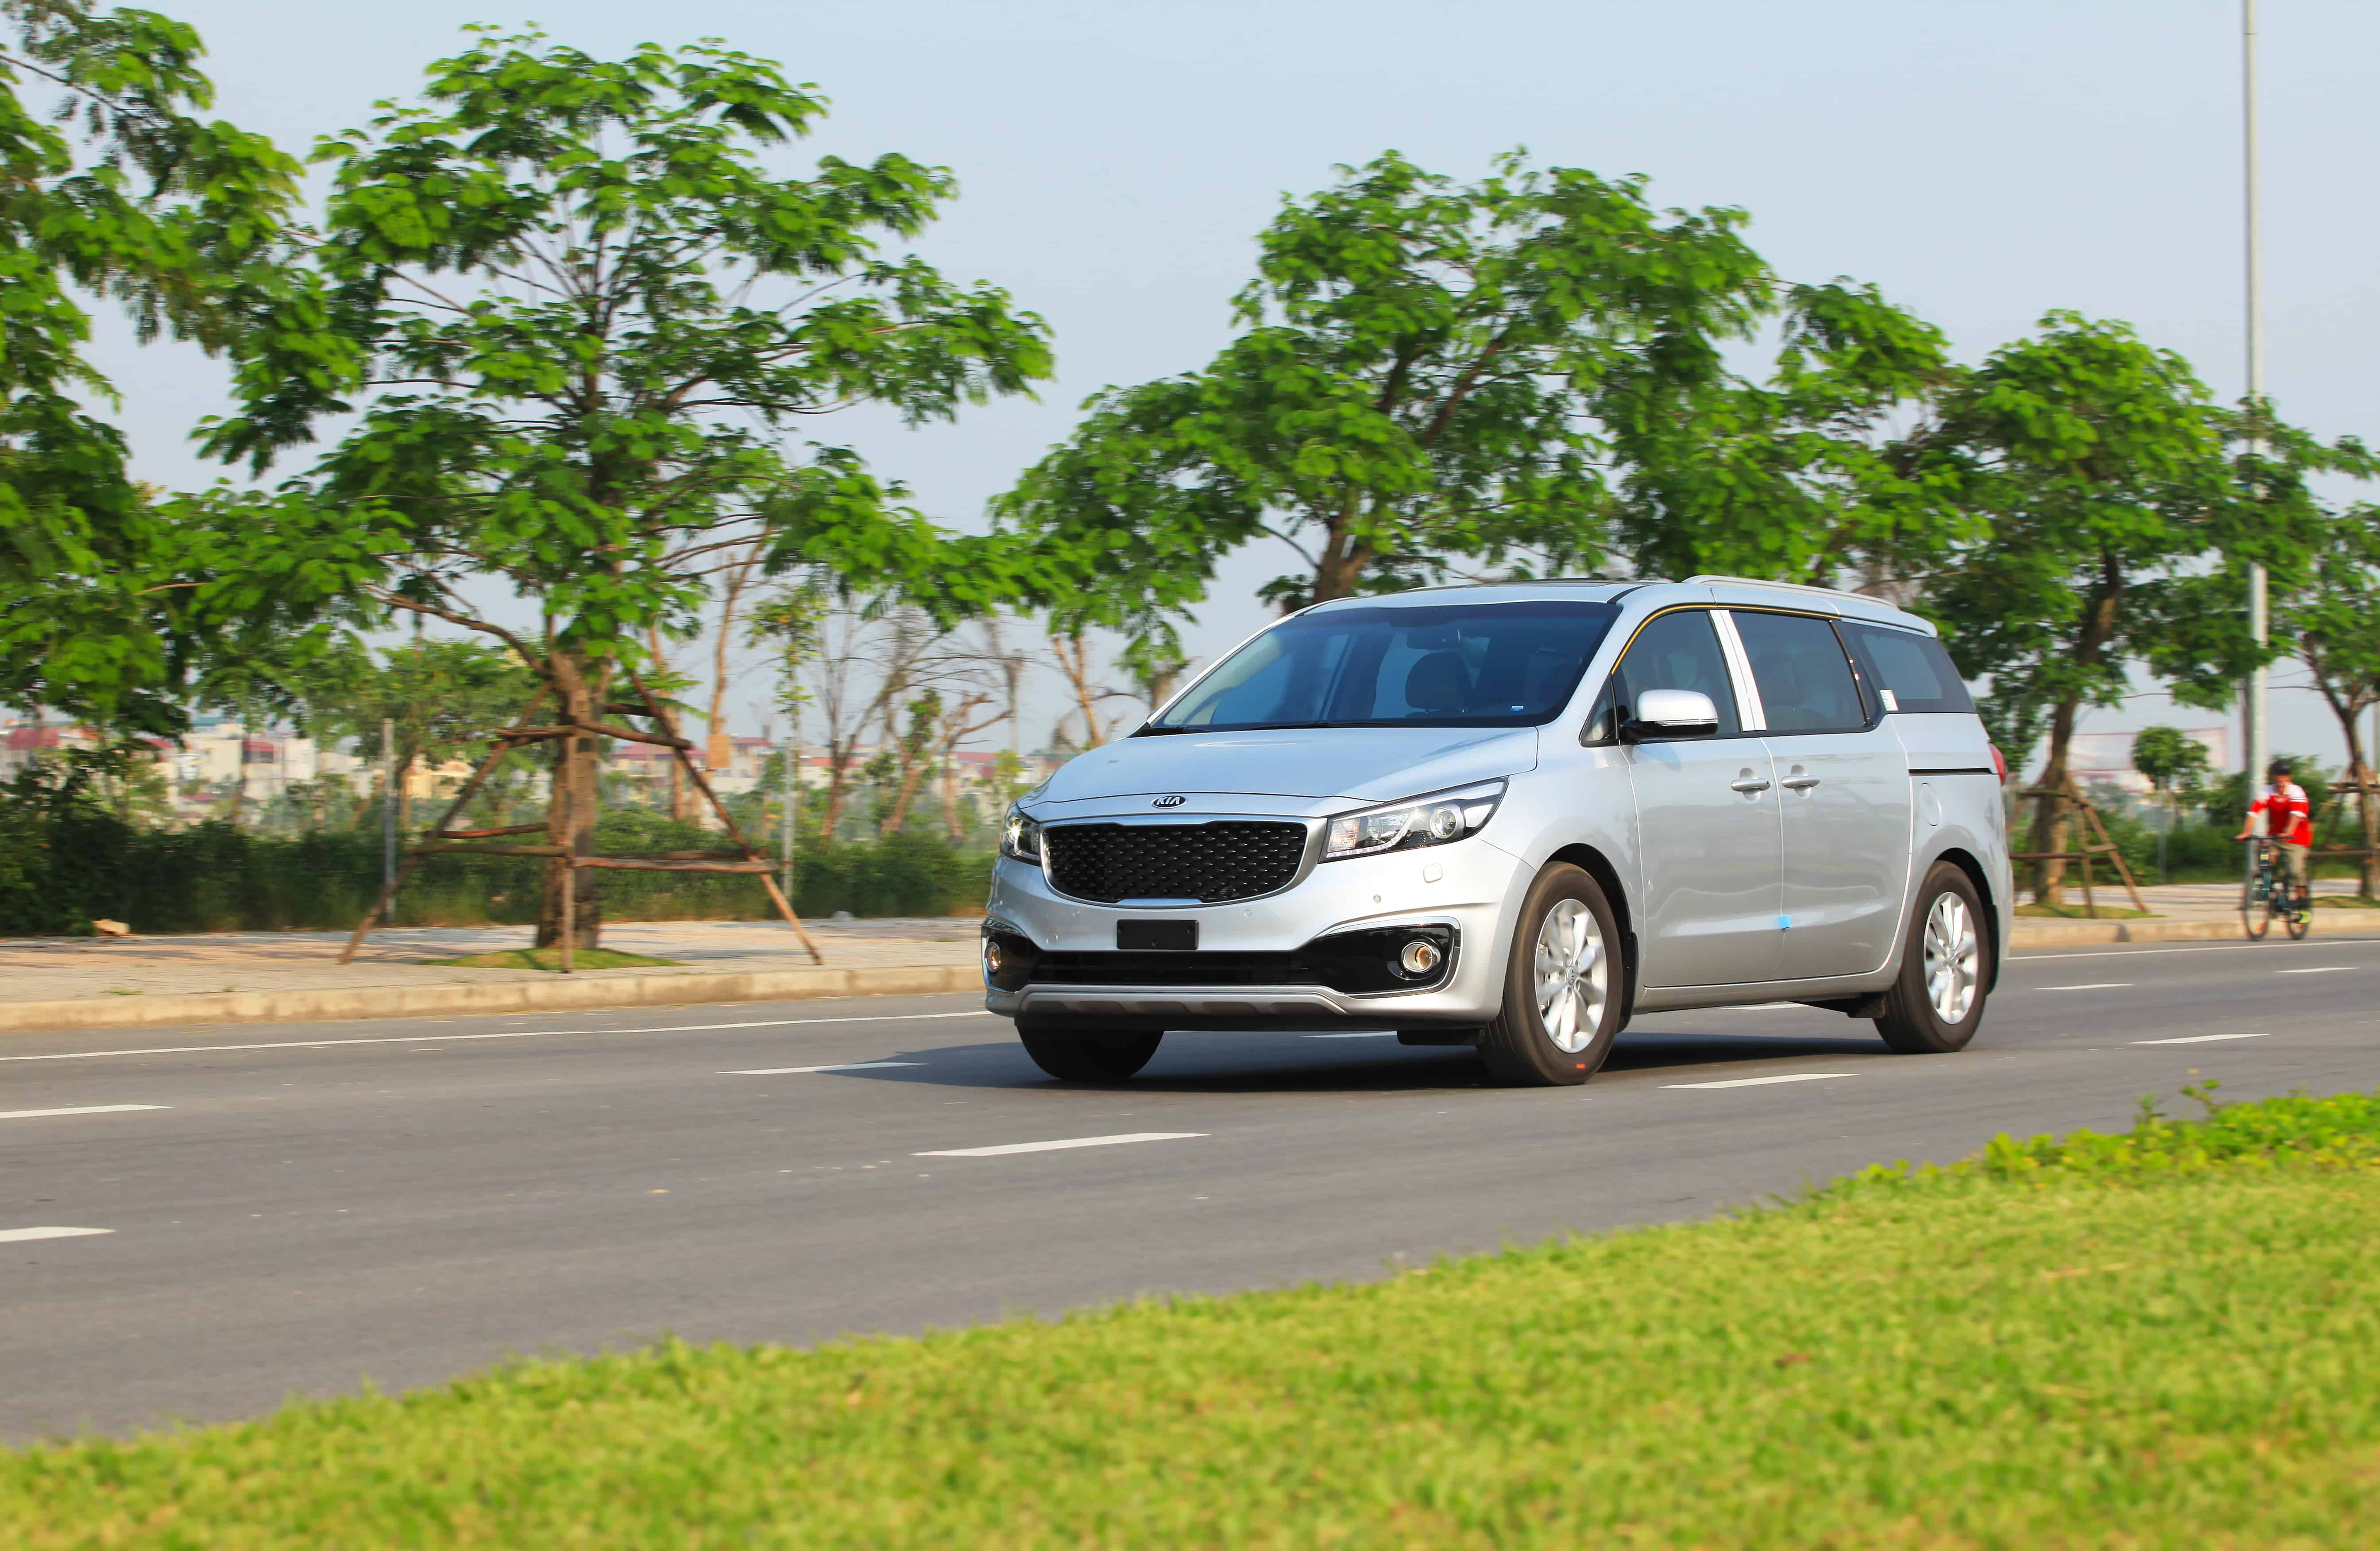 Kia Sedona minivans recalled for potential fire hazard